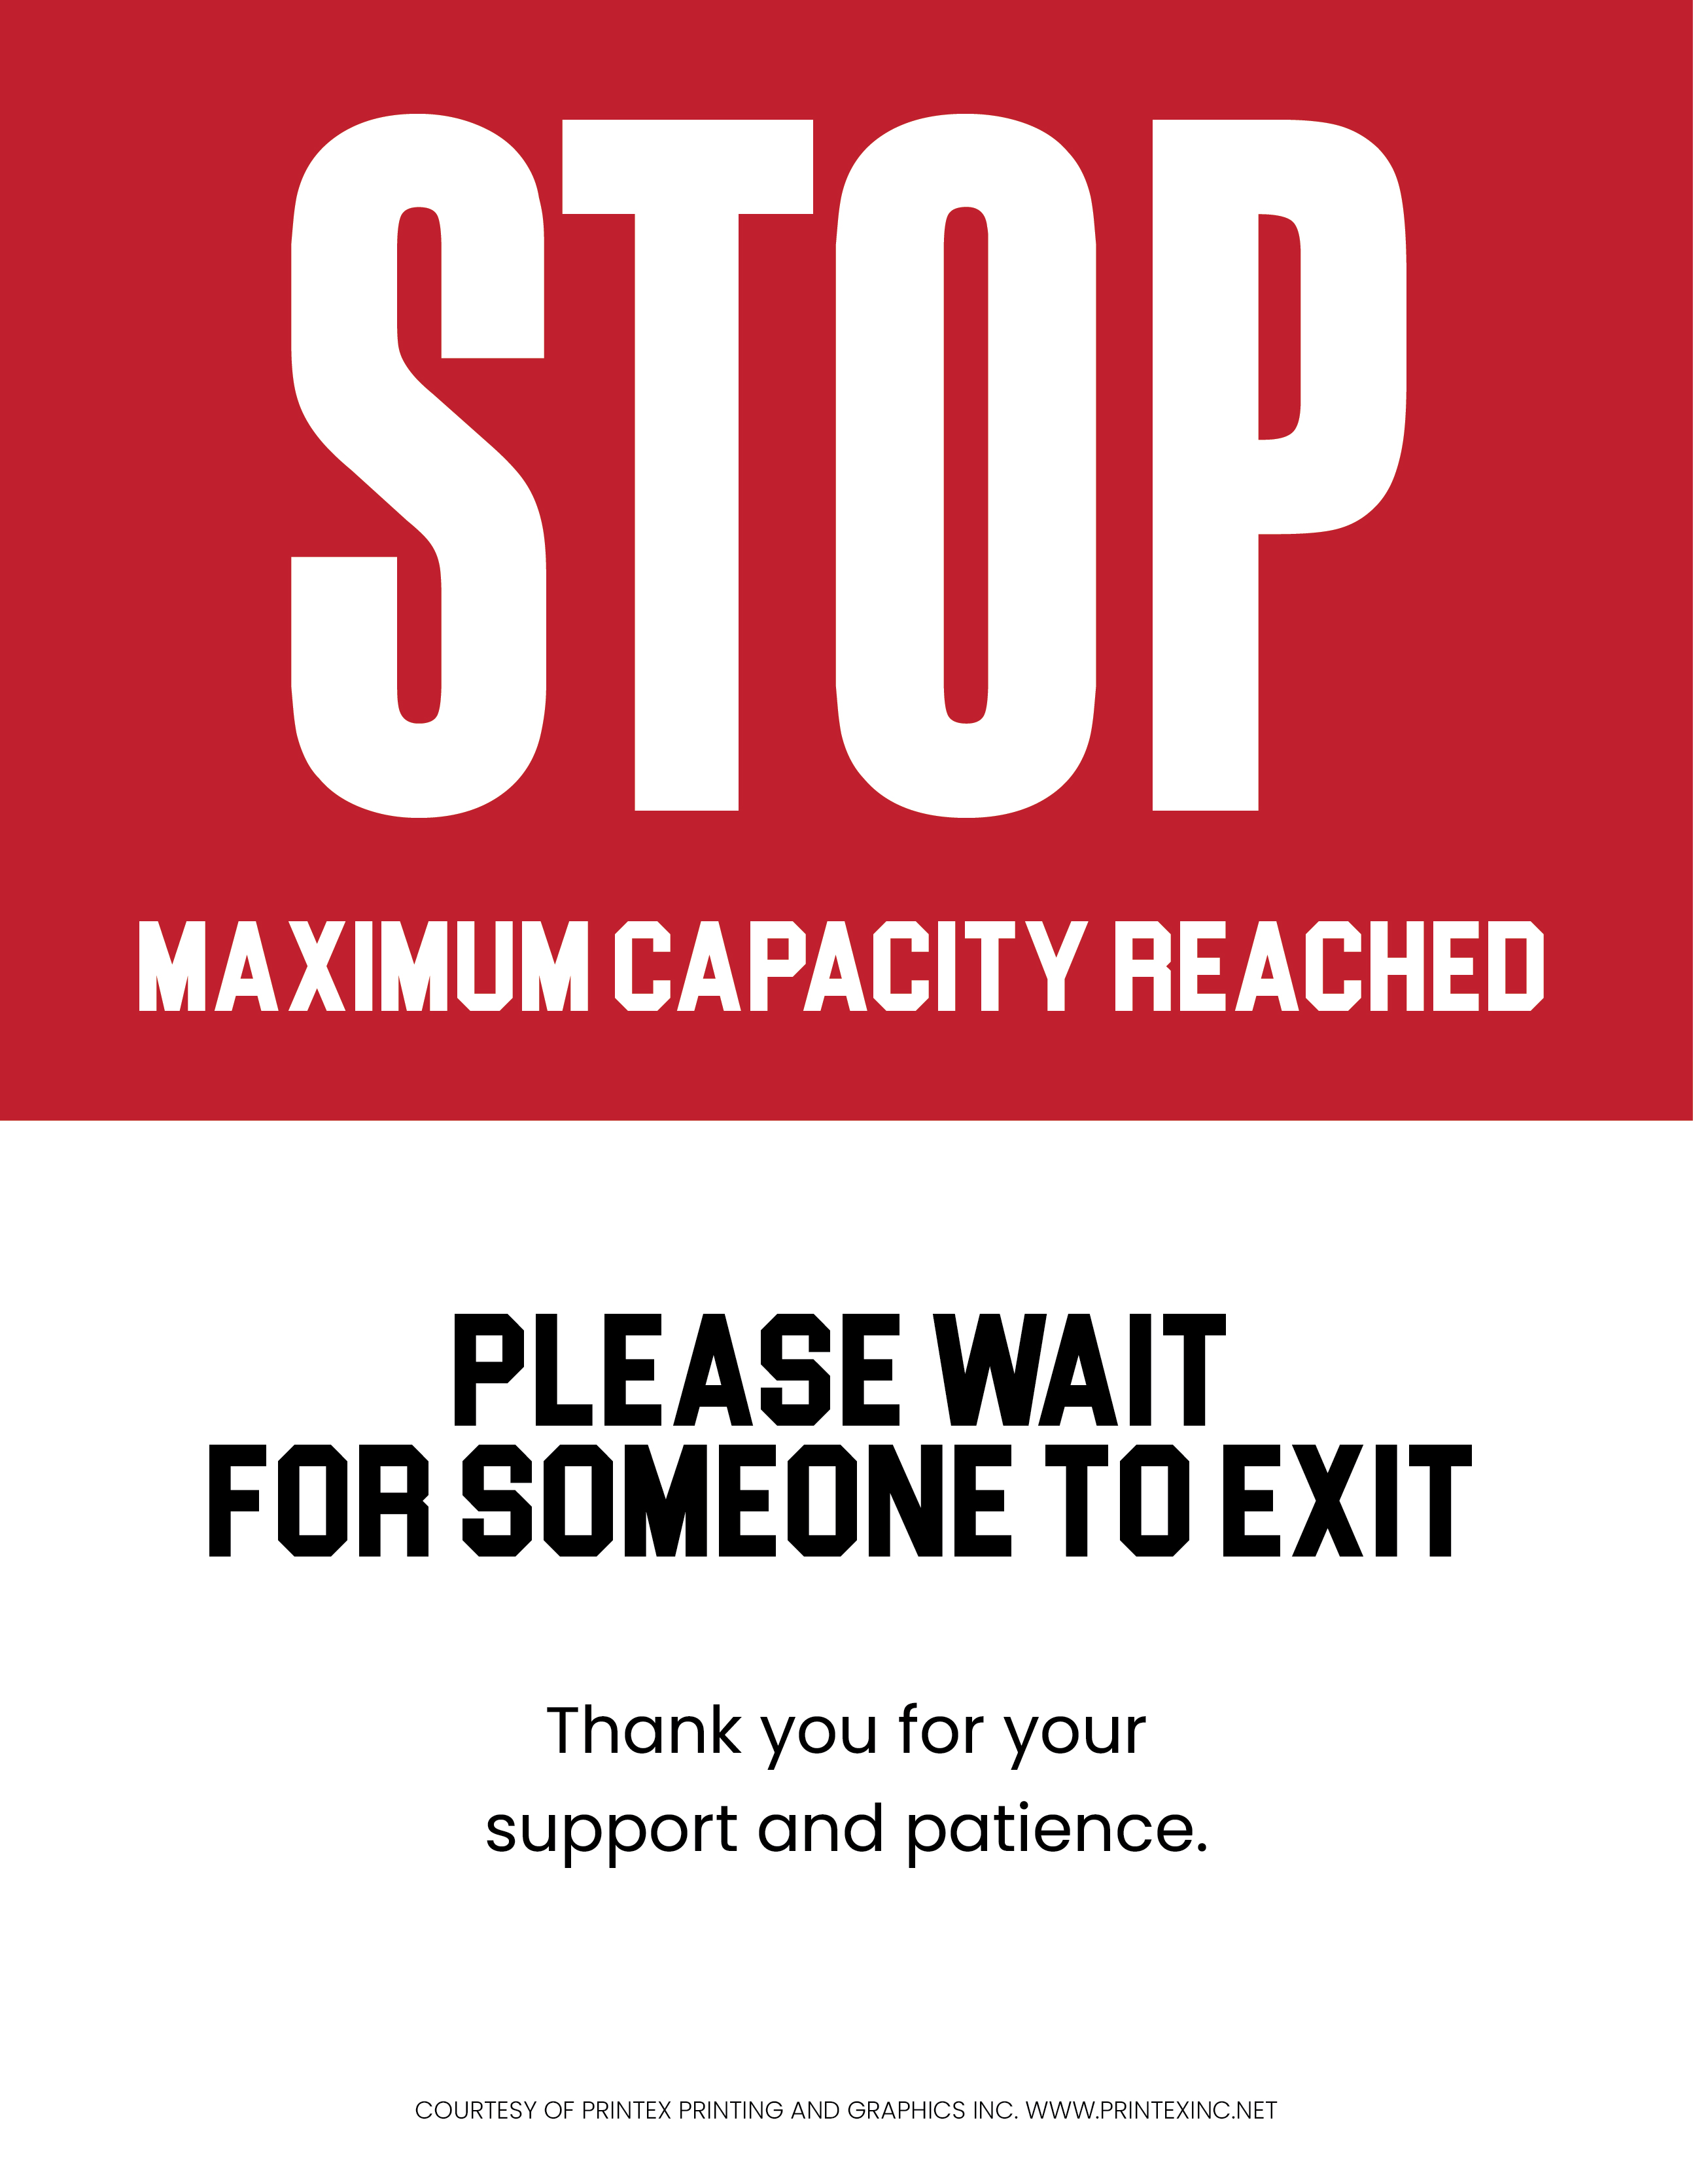 Stop Maximum Capacity Reached Sign